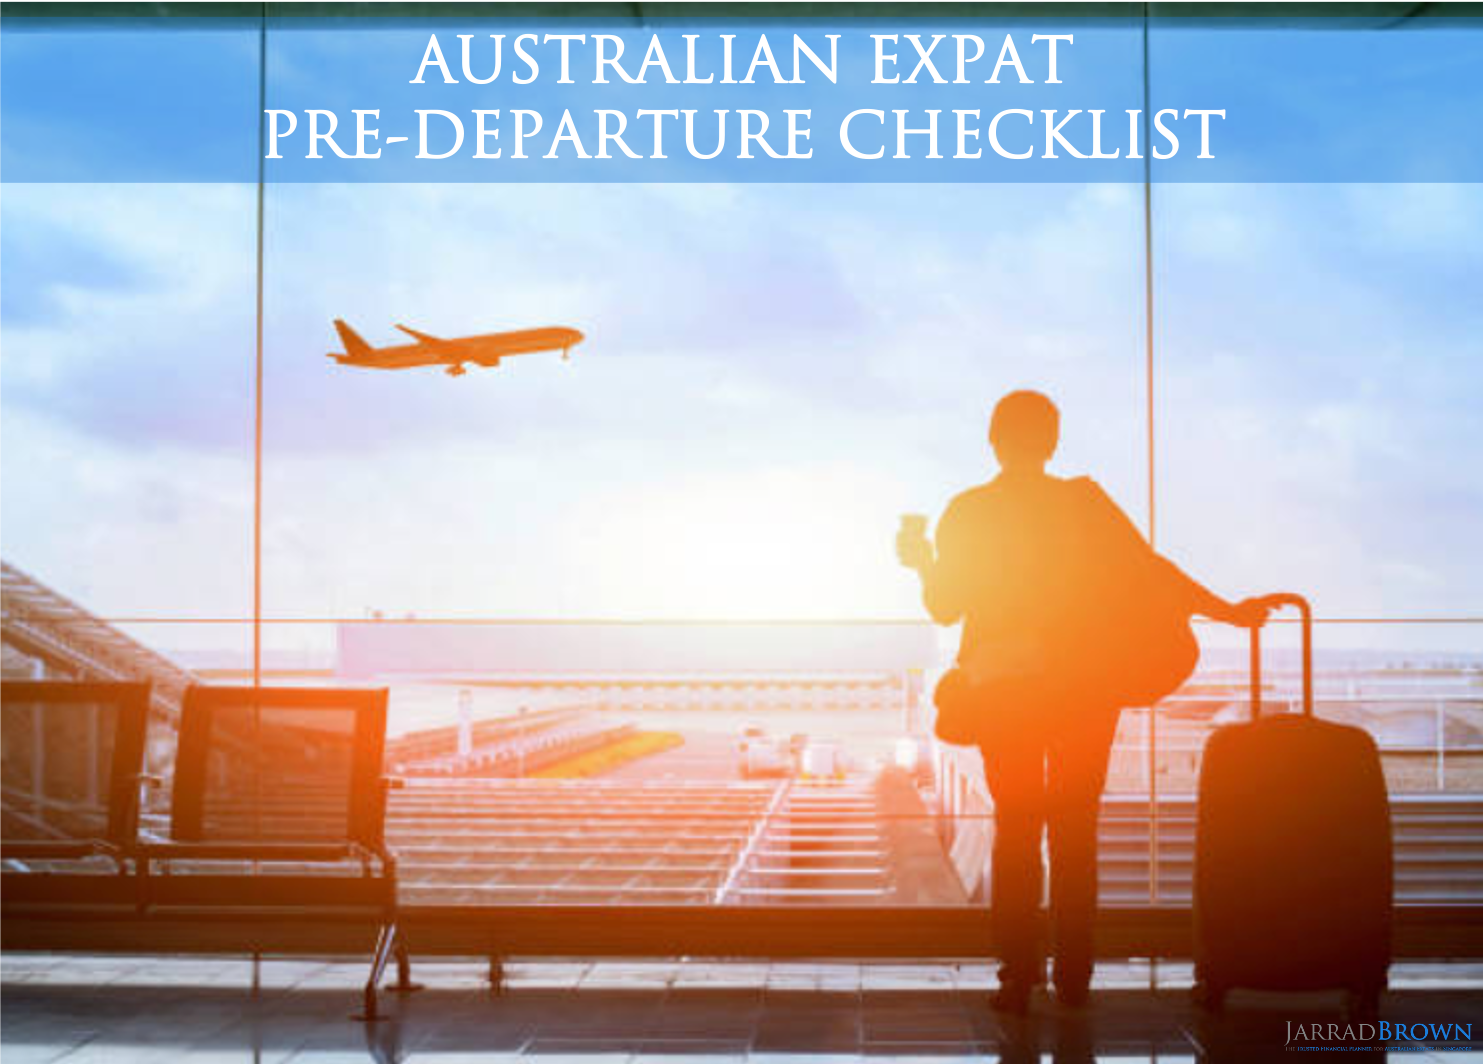 Departure Checklist for Australian Expats To Be - Jarrad Brown - Australian Expat Financial Planner Singapore